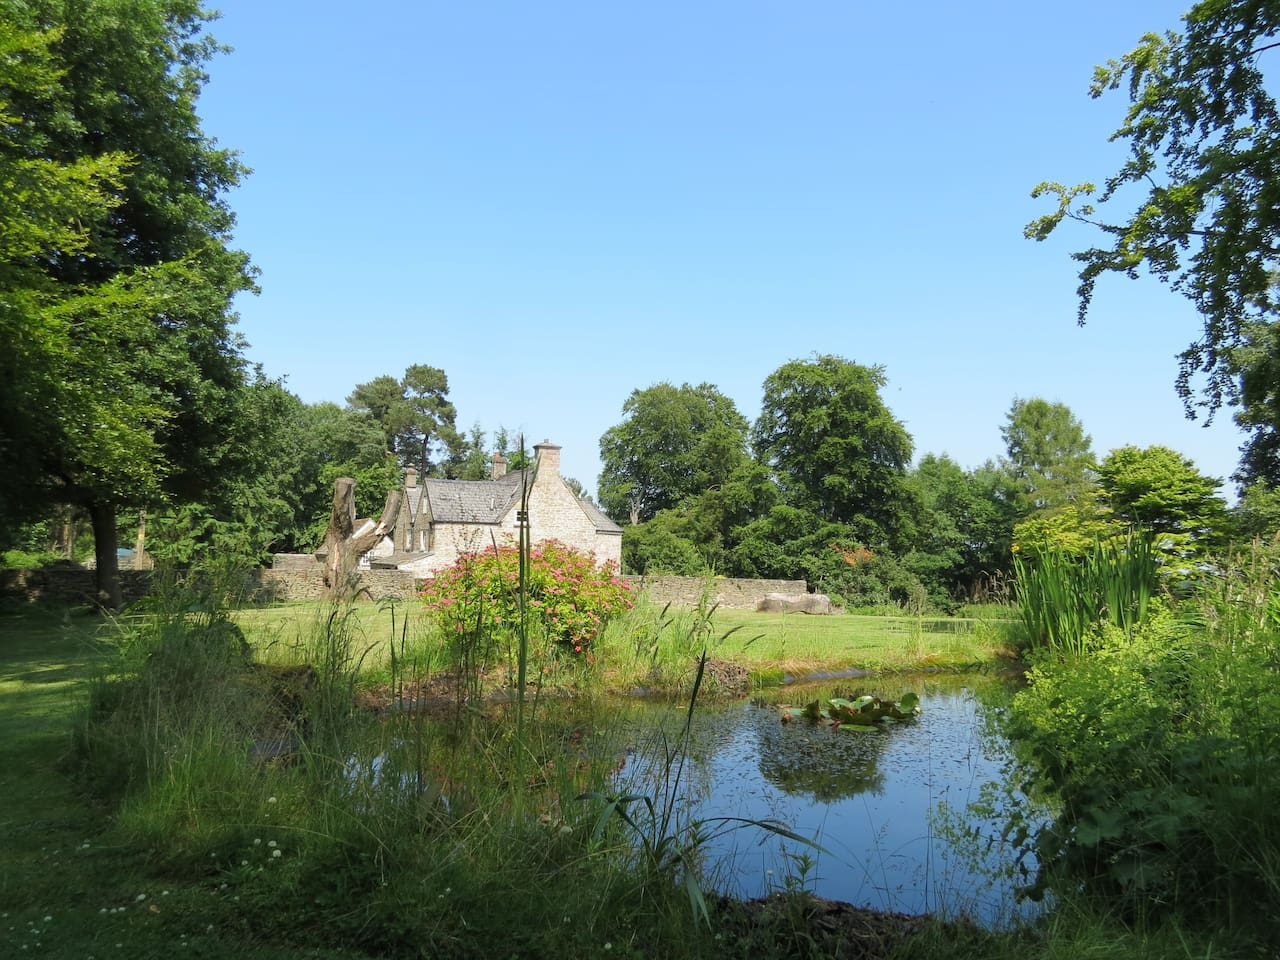 View of the Lodge from the pond in the Garden